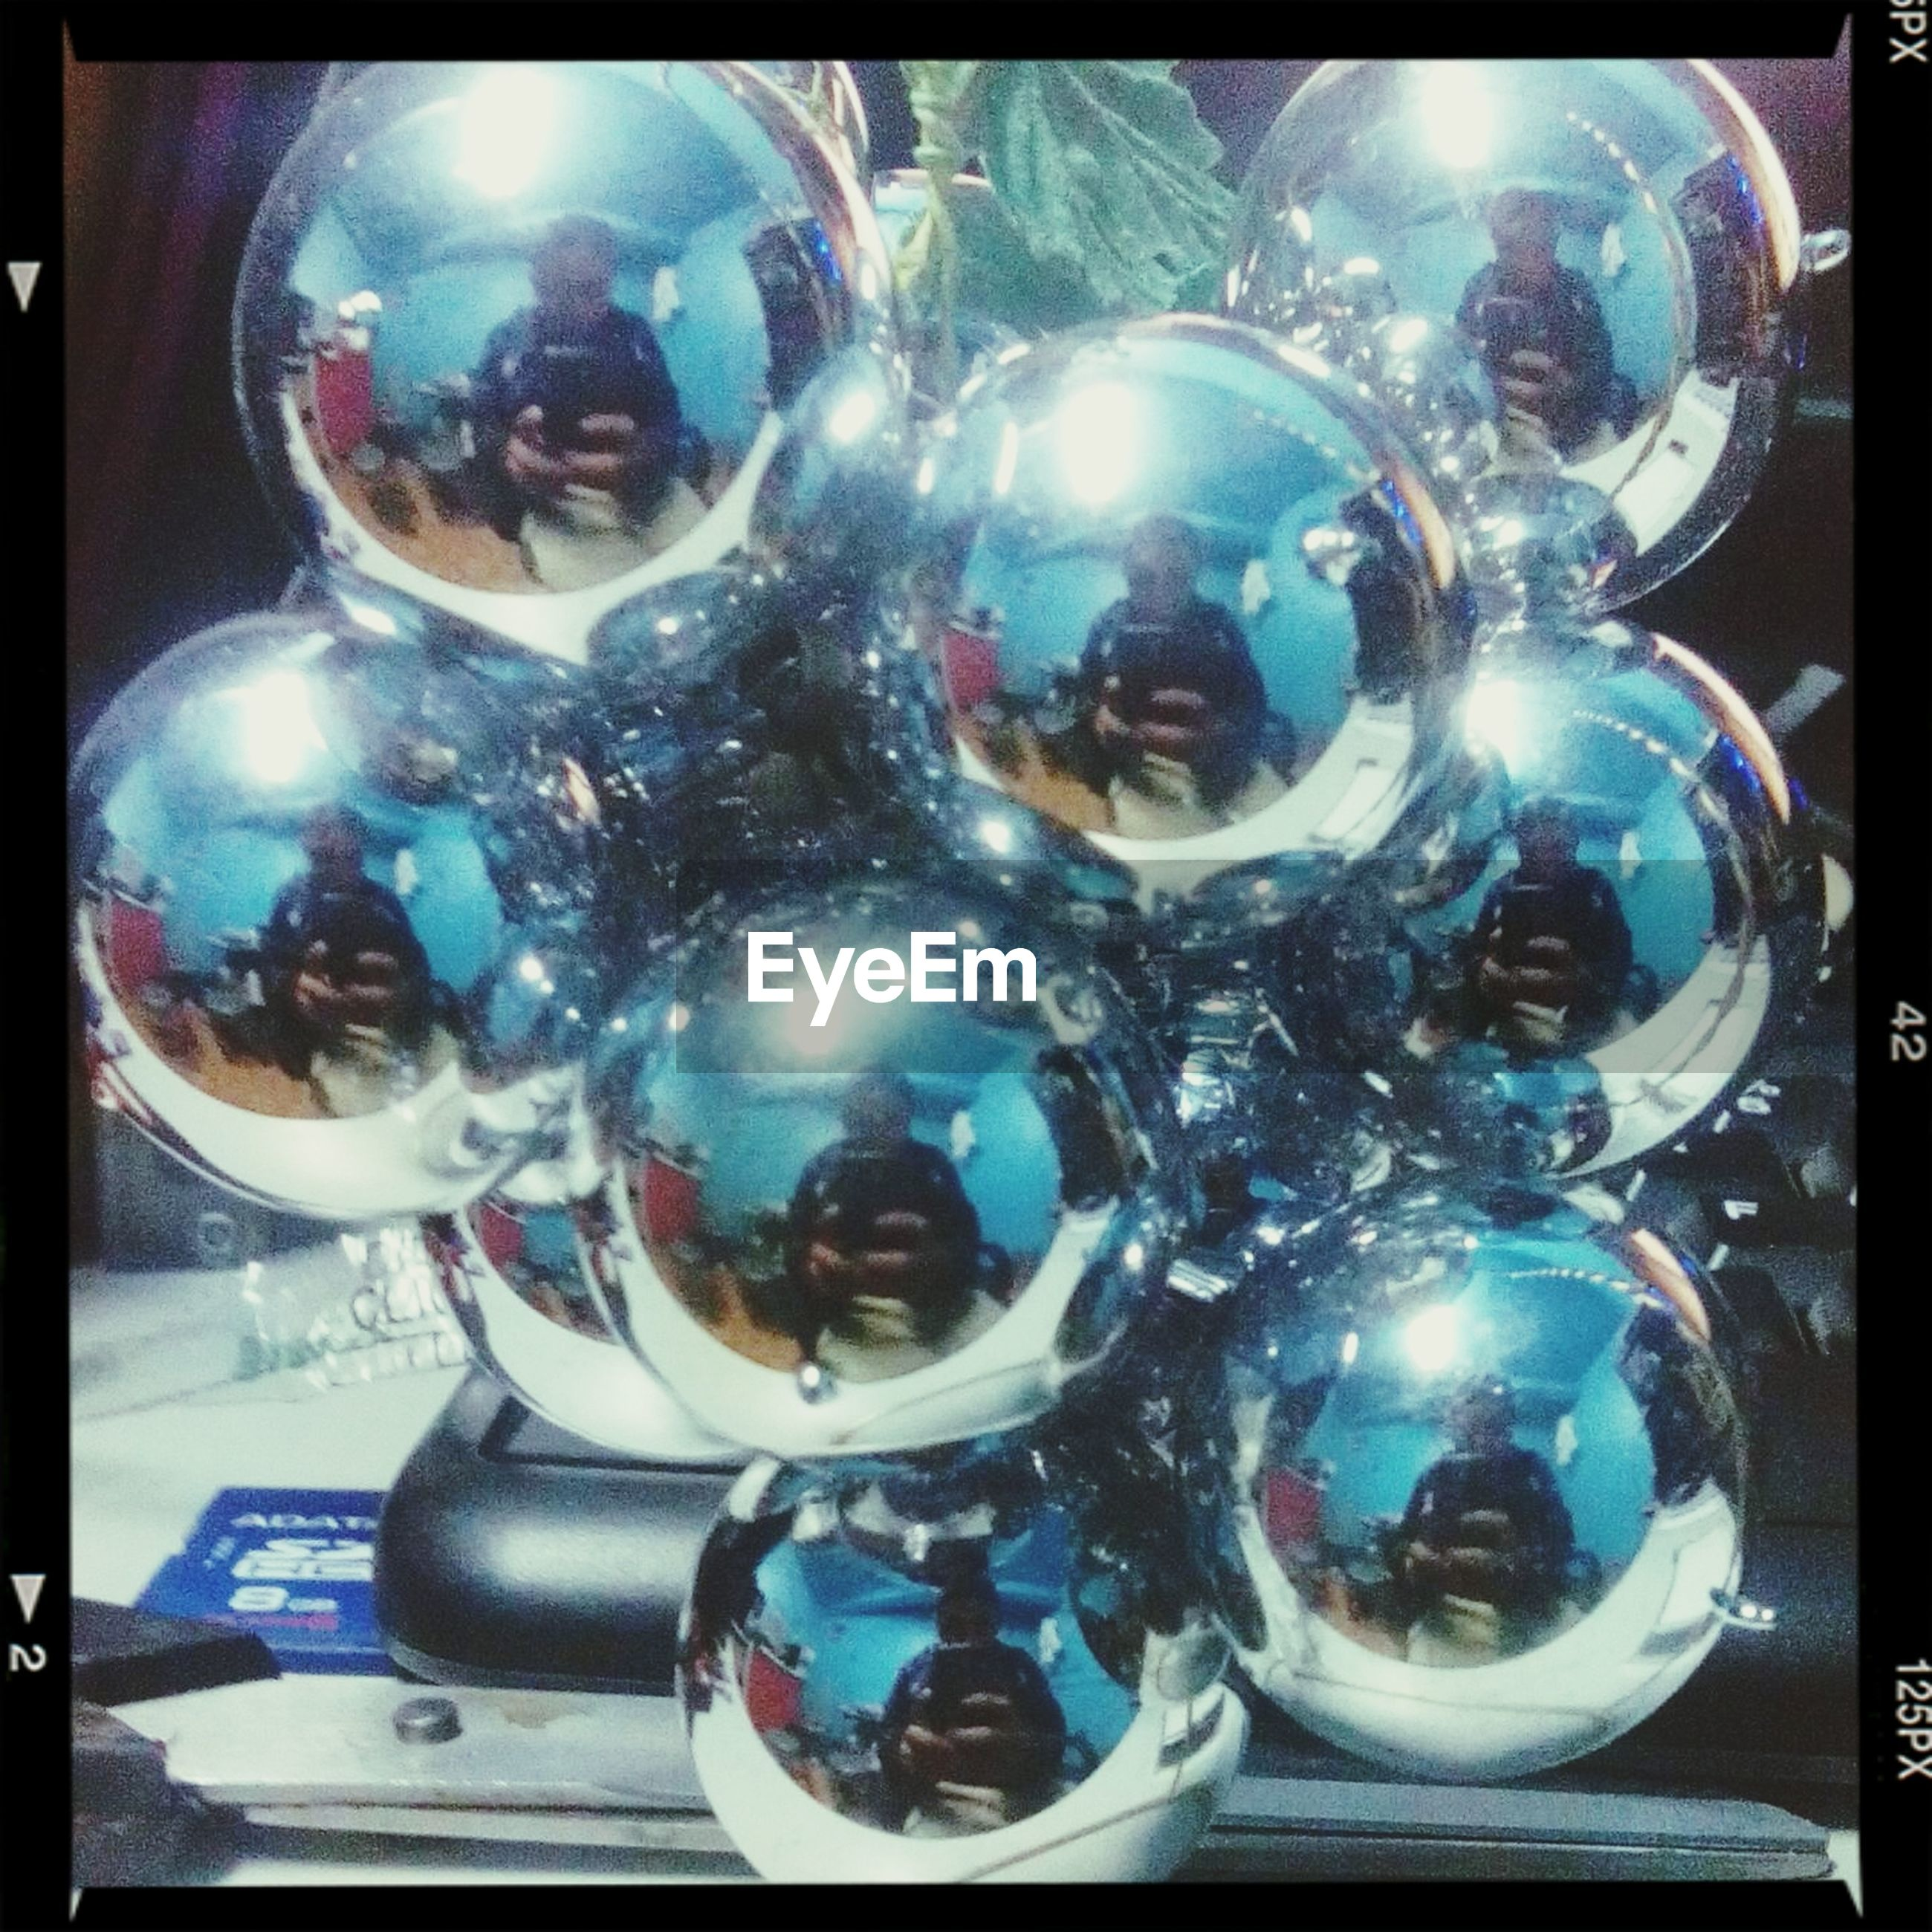 transfer print, auto post production filter, indoors, glass - material, illuminated, lighting equipment, close-up, luxury, decoration, transparent, shiny, sphere, still life, blue, no people, hanging, table, celebration, glowing, decor